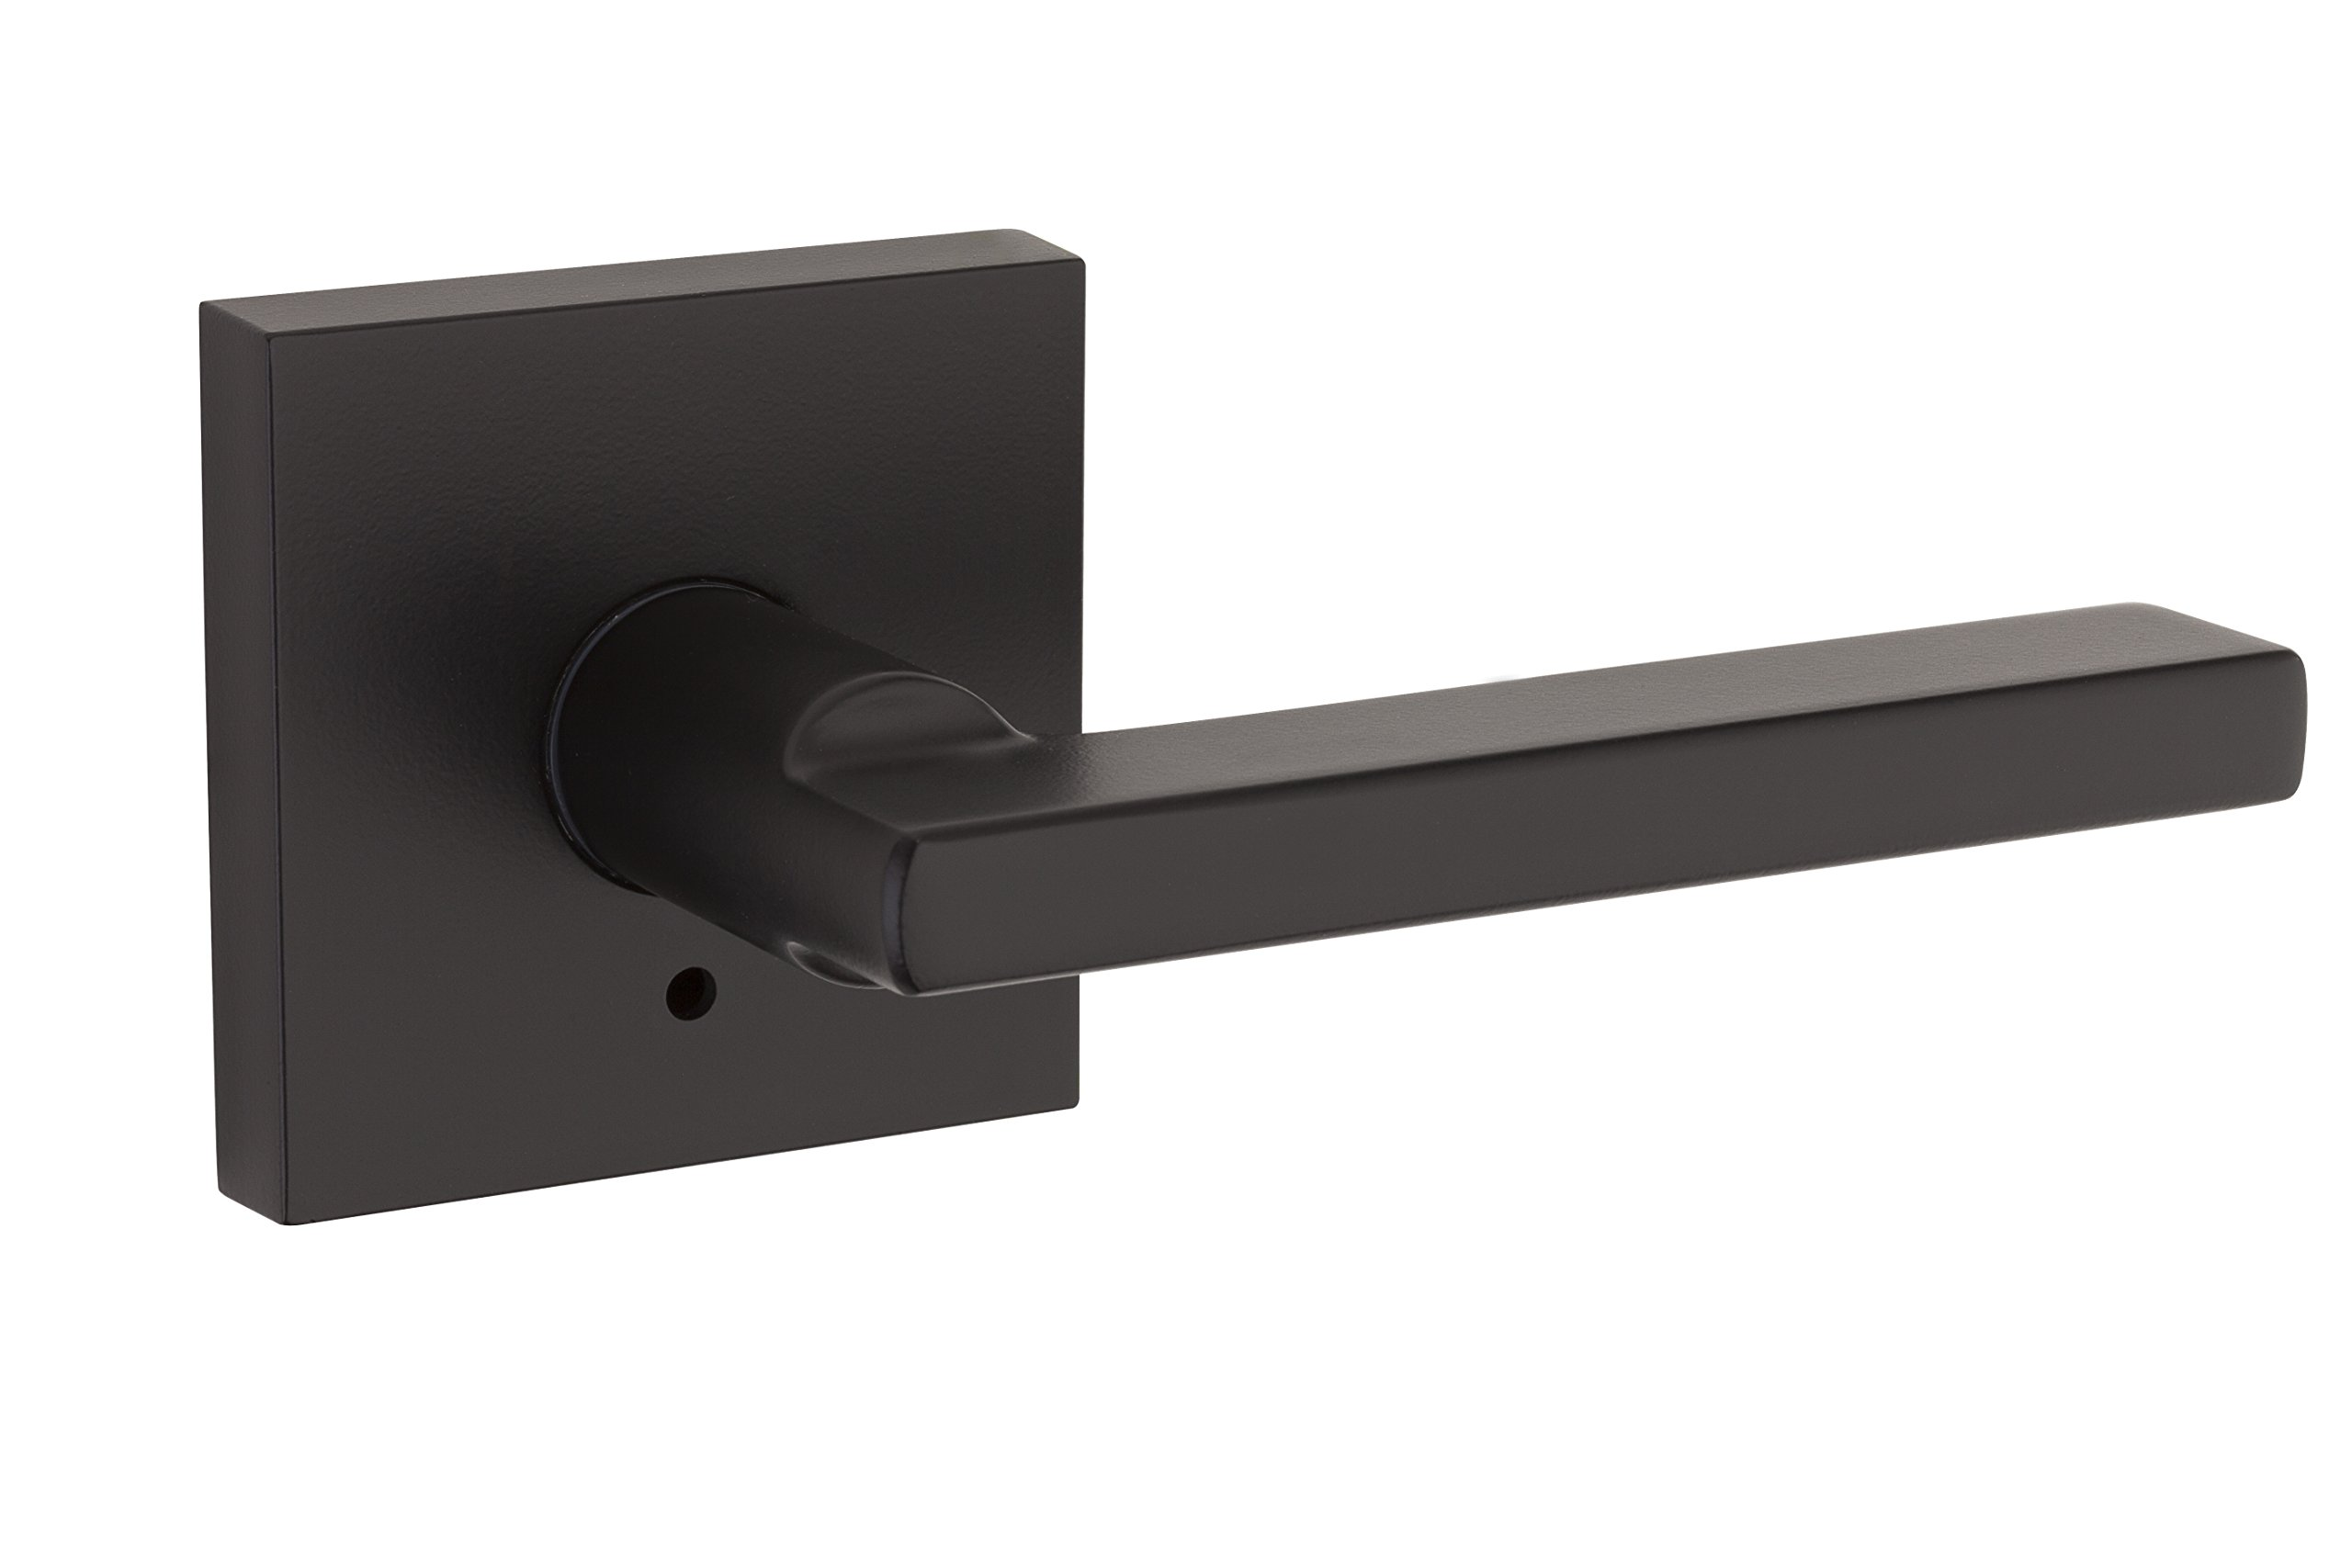 Kwikset 91550-029 Halifax Slim Square Bed/Bath Lever in Iron Black